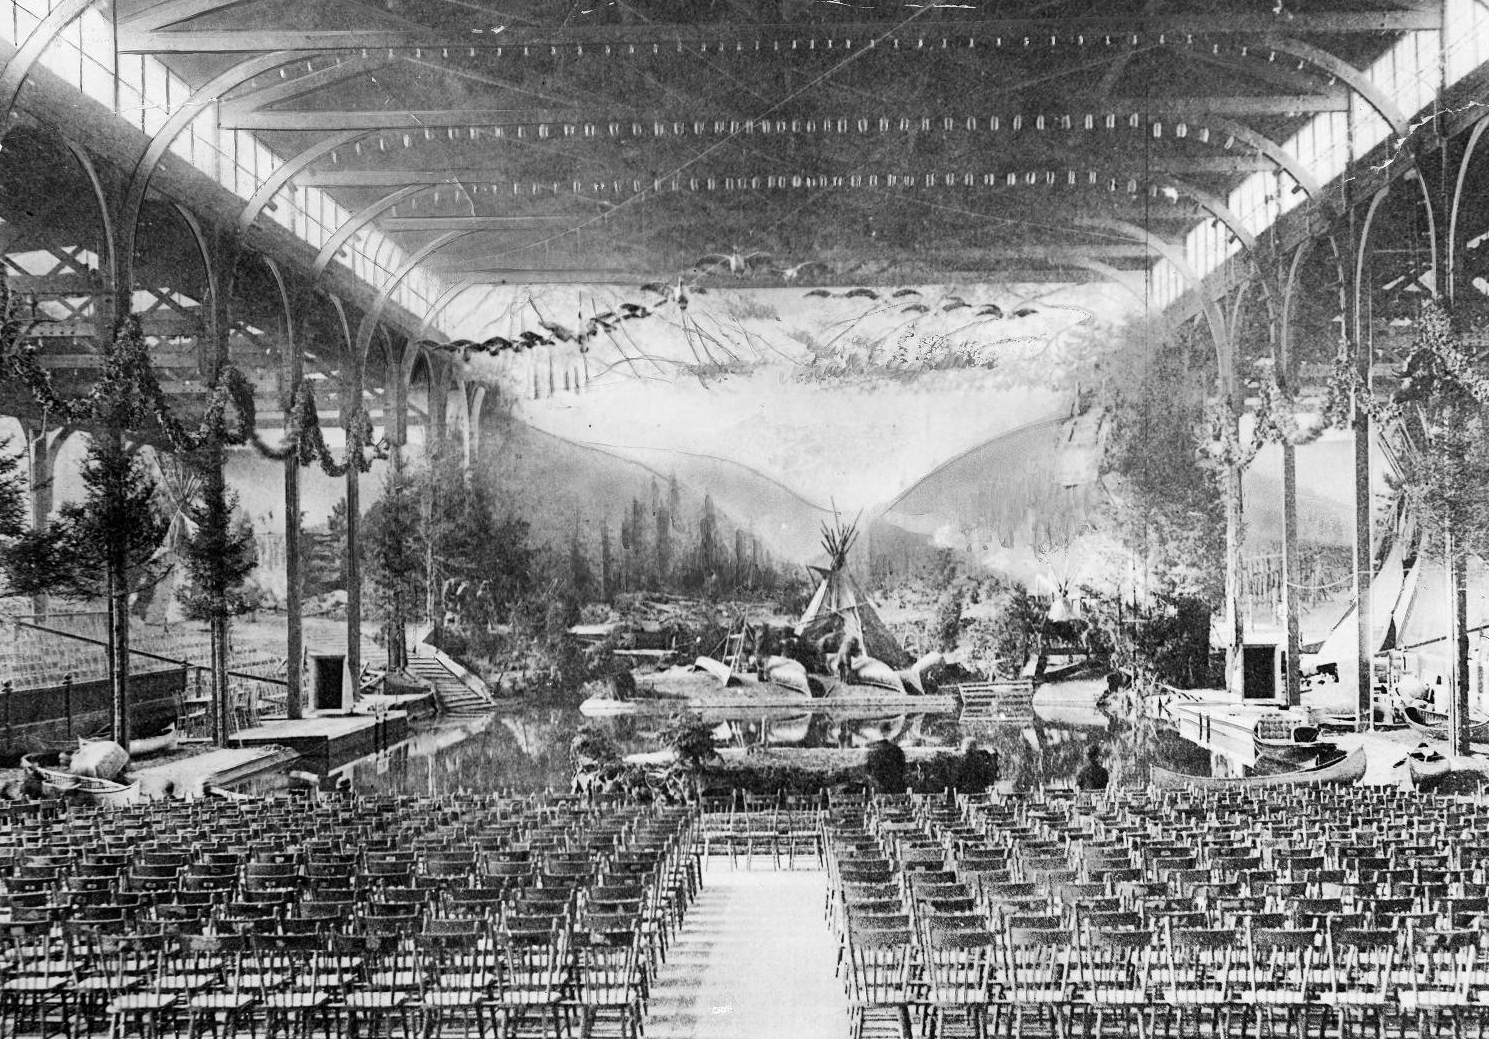 1900 Republican Convention in Philadelphia included a theatrical Native American stage setting | Evening Bulletin | Special Collections Research Center, Temple University Libraries, Philadelphia, PA